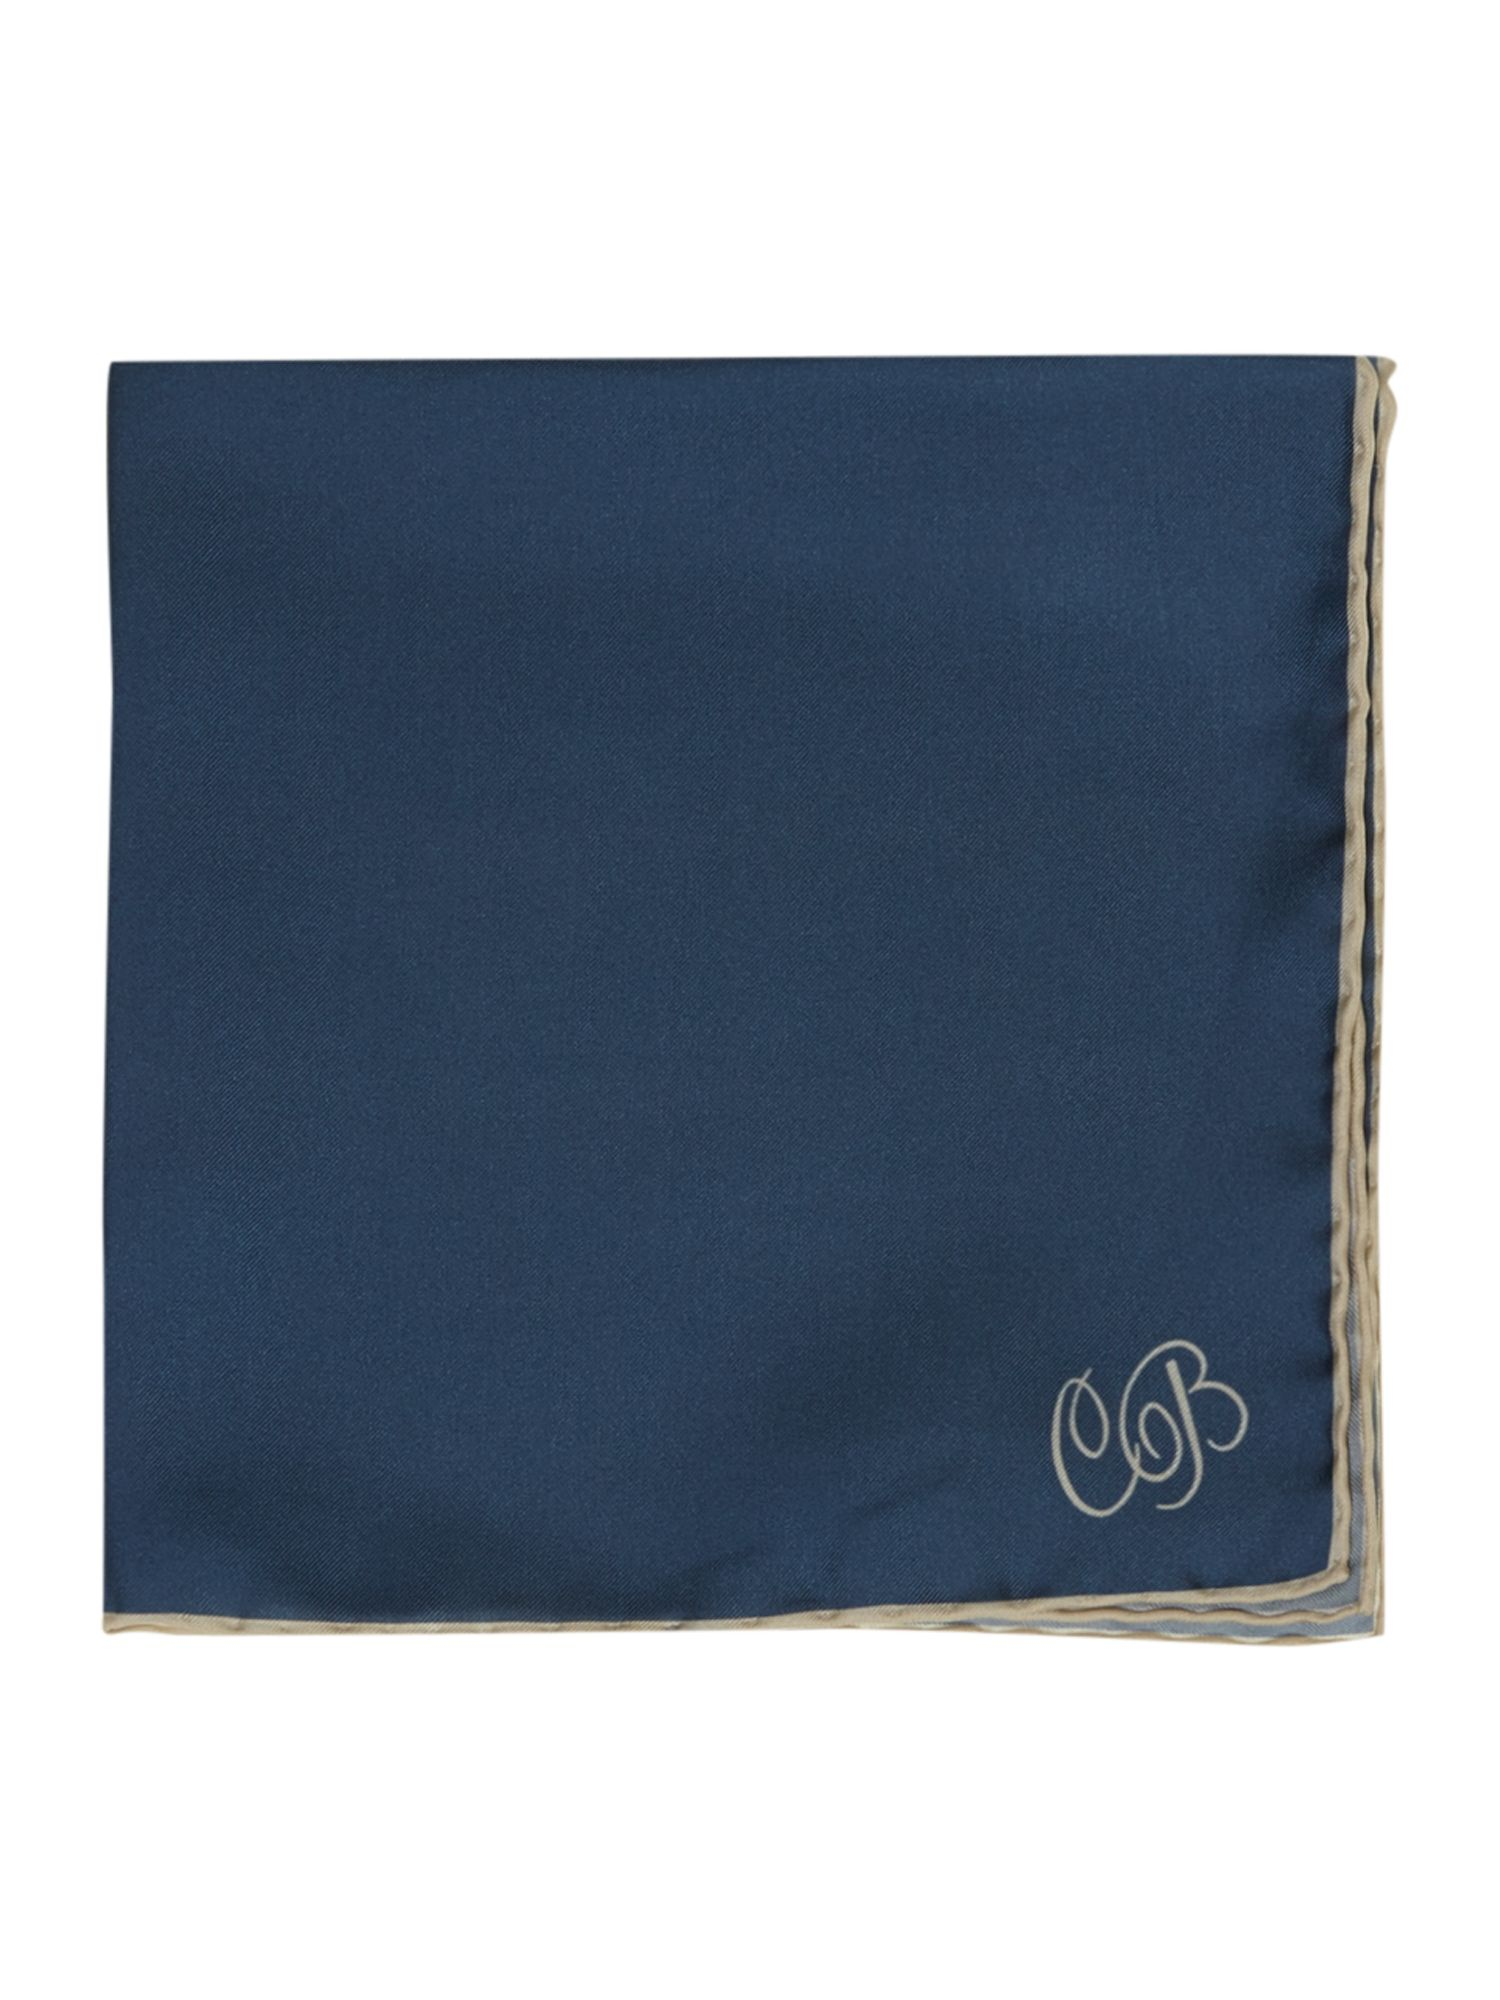 Silk string border square handkerchiefs